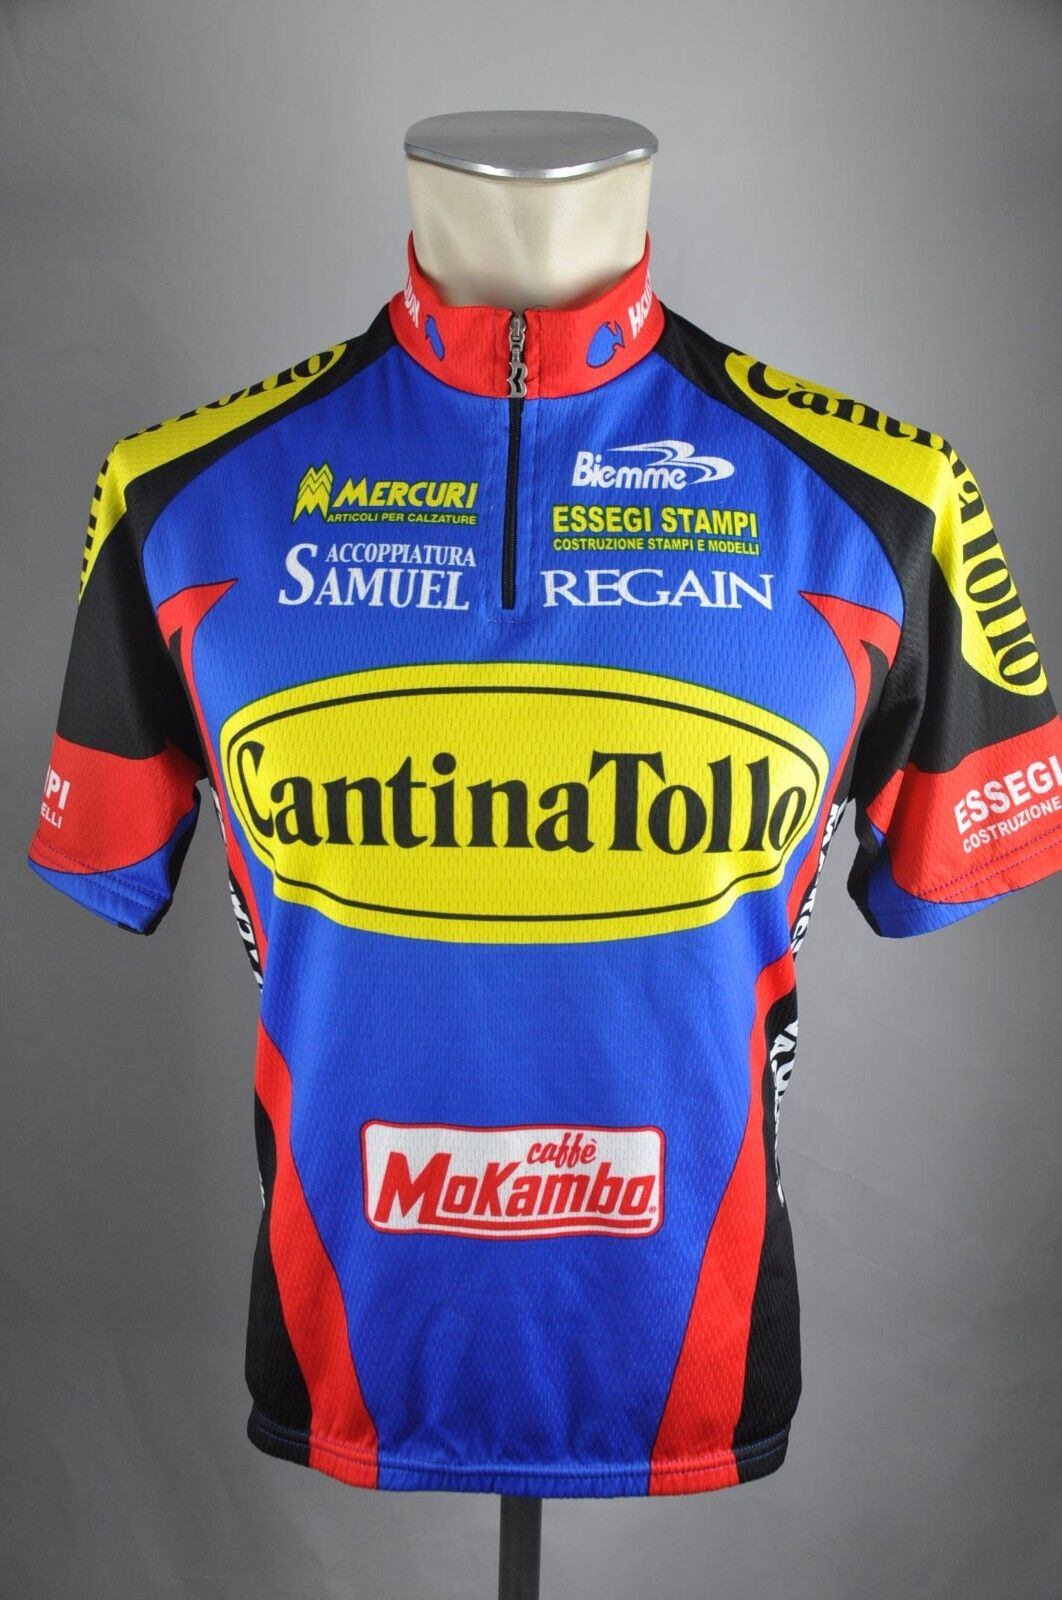 CantinaTollo Team Trikot Biemme Gr. M BW 52cm Bike cycling jersey Shirt HZ1